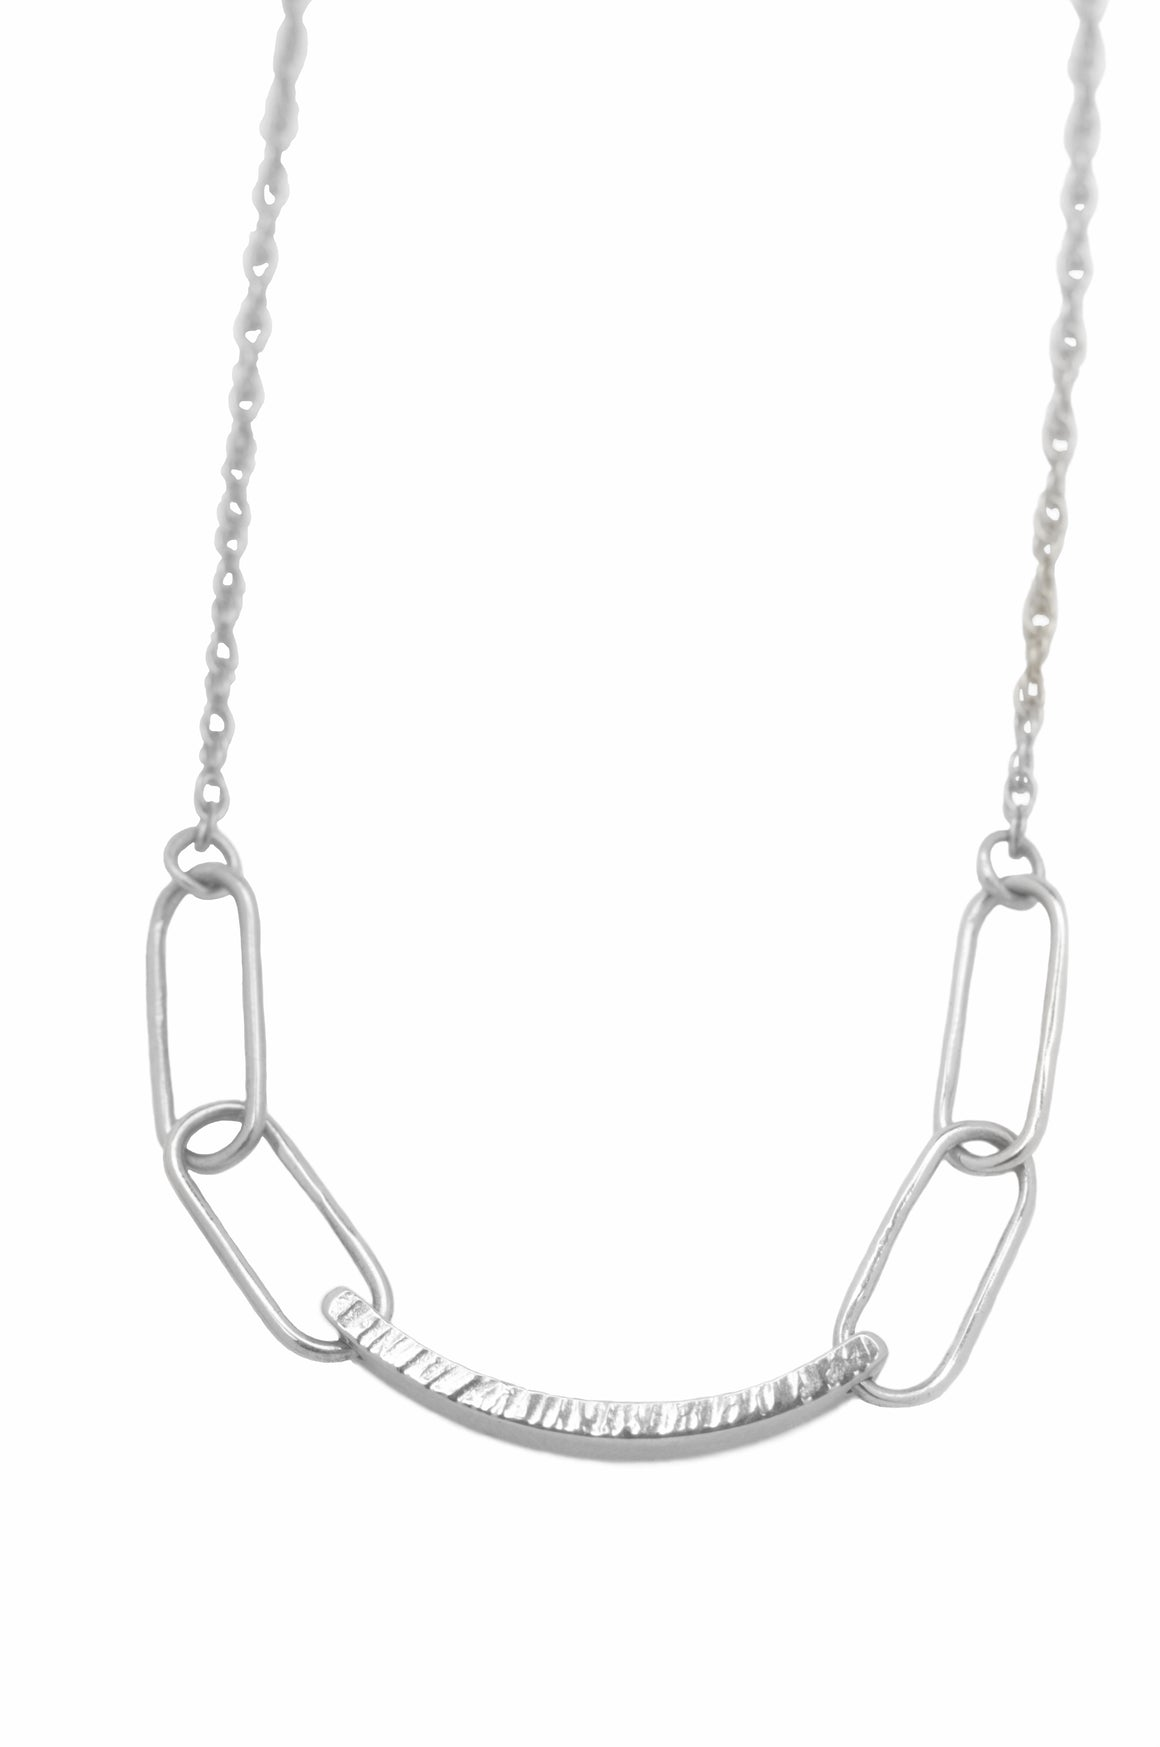 Hammered Link Necklace in Silver